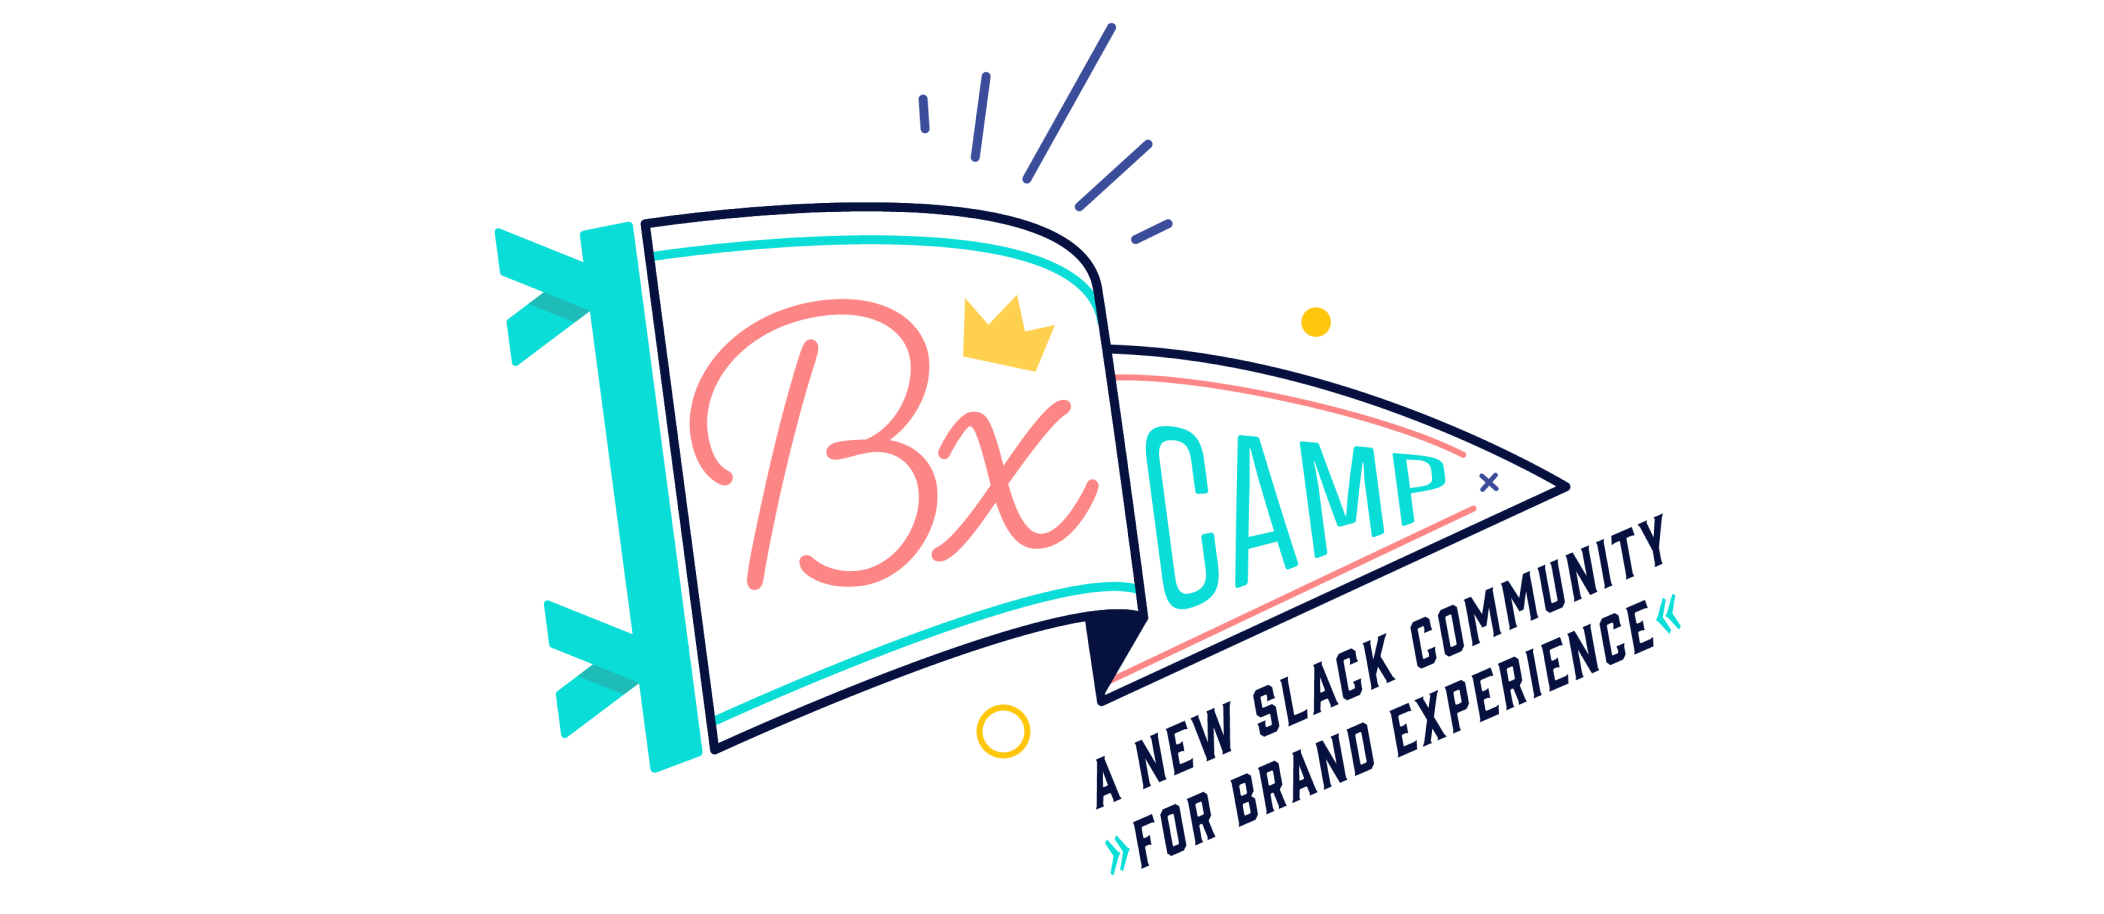 """A picture of a flag with the words """"BX Camp"""" with """"A new slack community for brand experience"""" below it."""